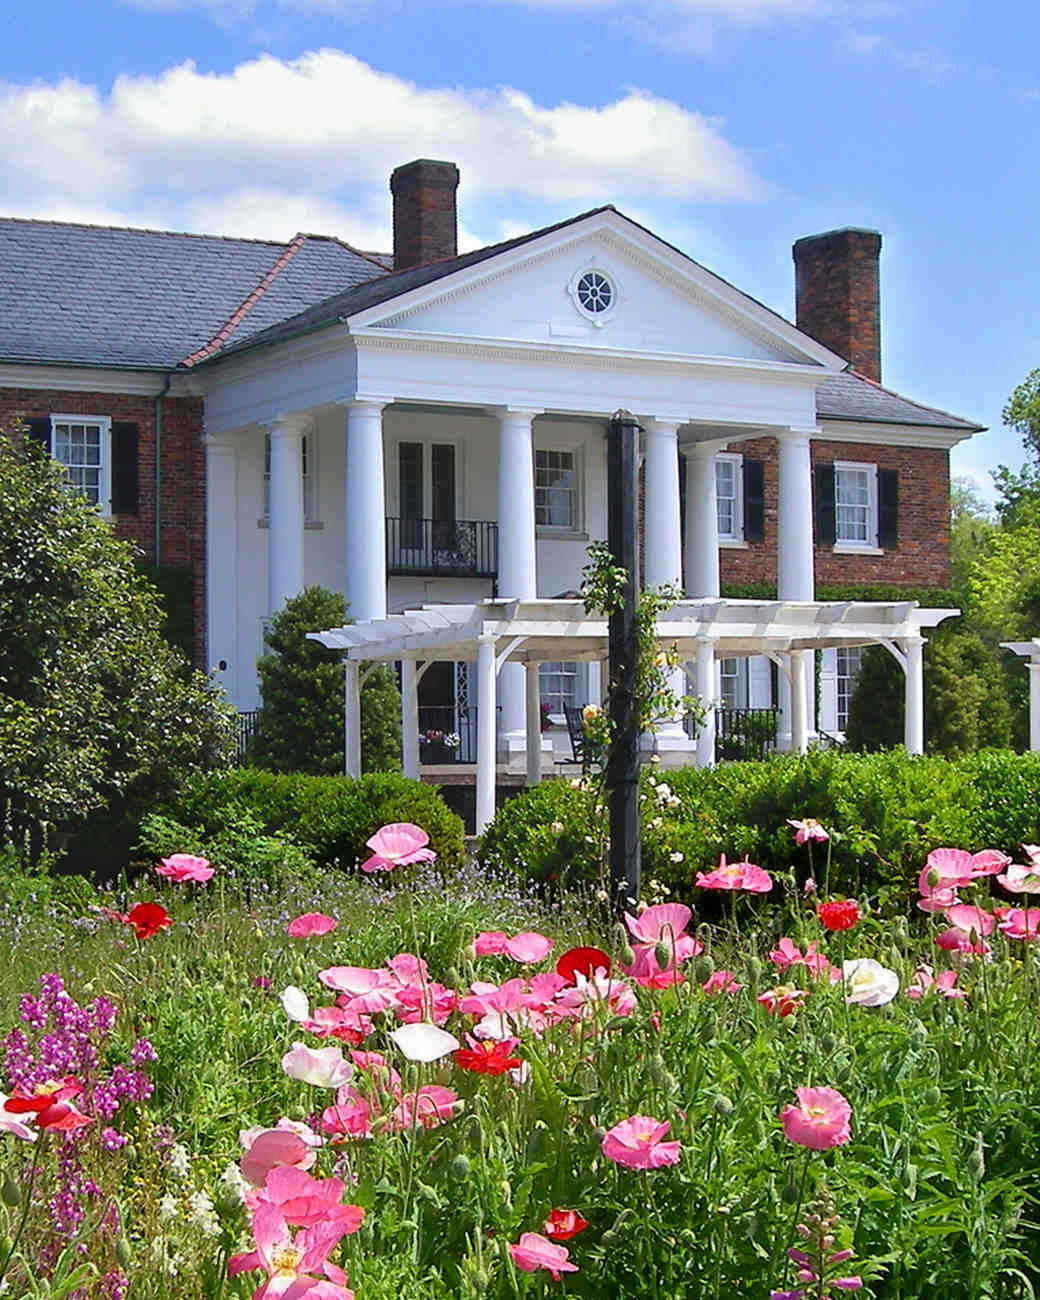 Boone Hall Plantation 2013: Most Incredible Film Locations Where You Can Also Get